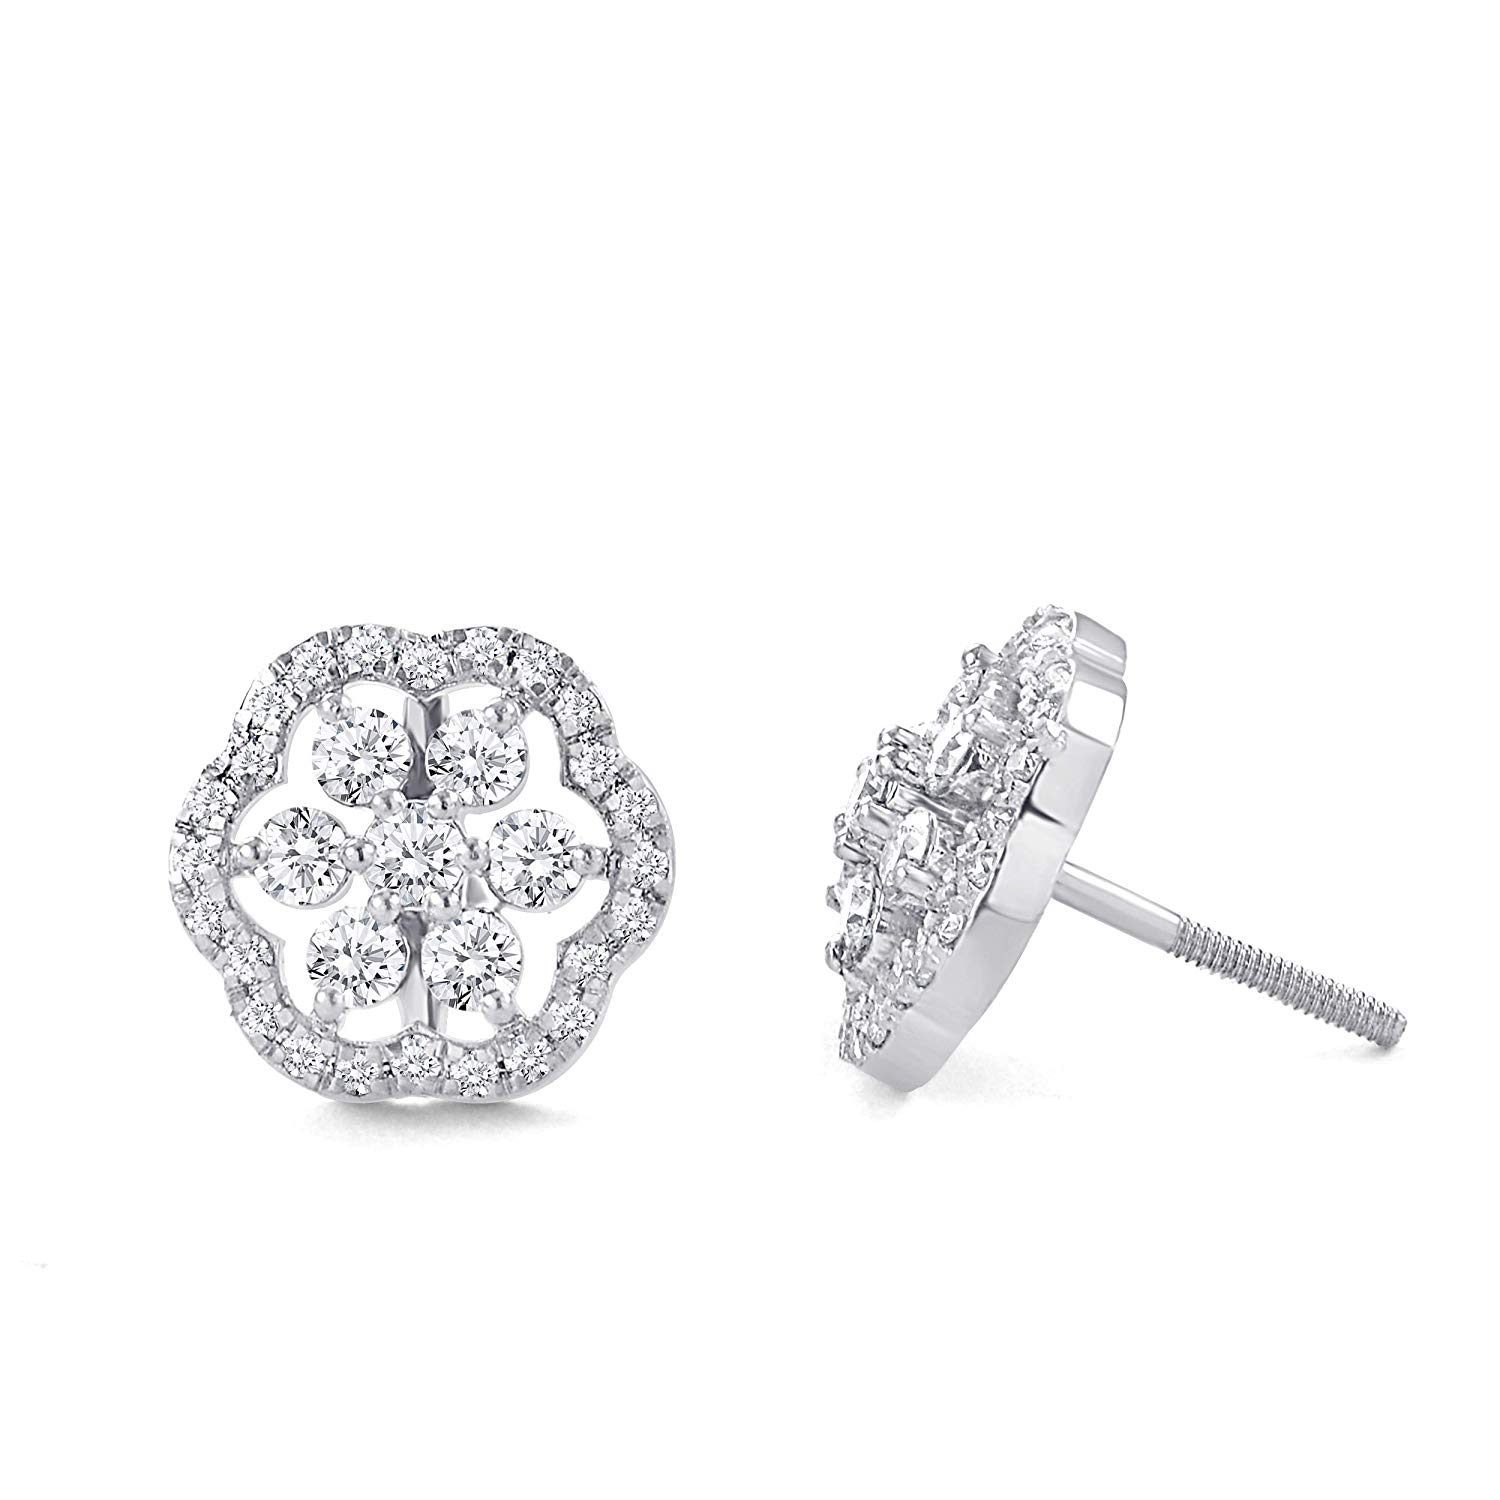 Get Quotations 1 10 Ct Round Cut White Natural Diamond Cer Flower Stud Earrings In 925 Sterling Silver